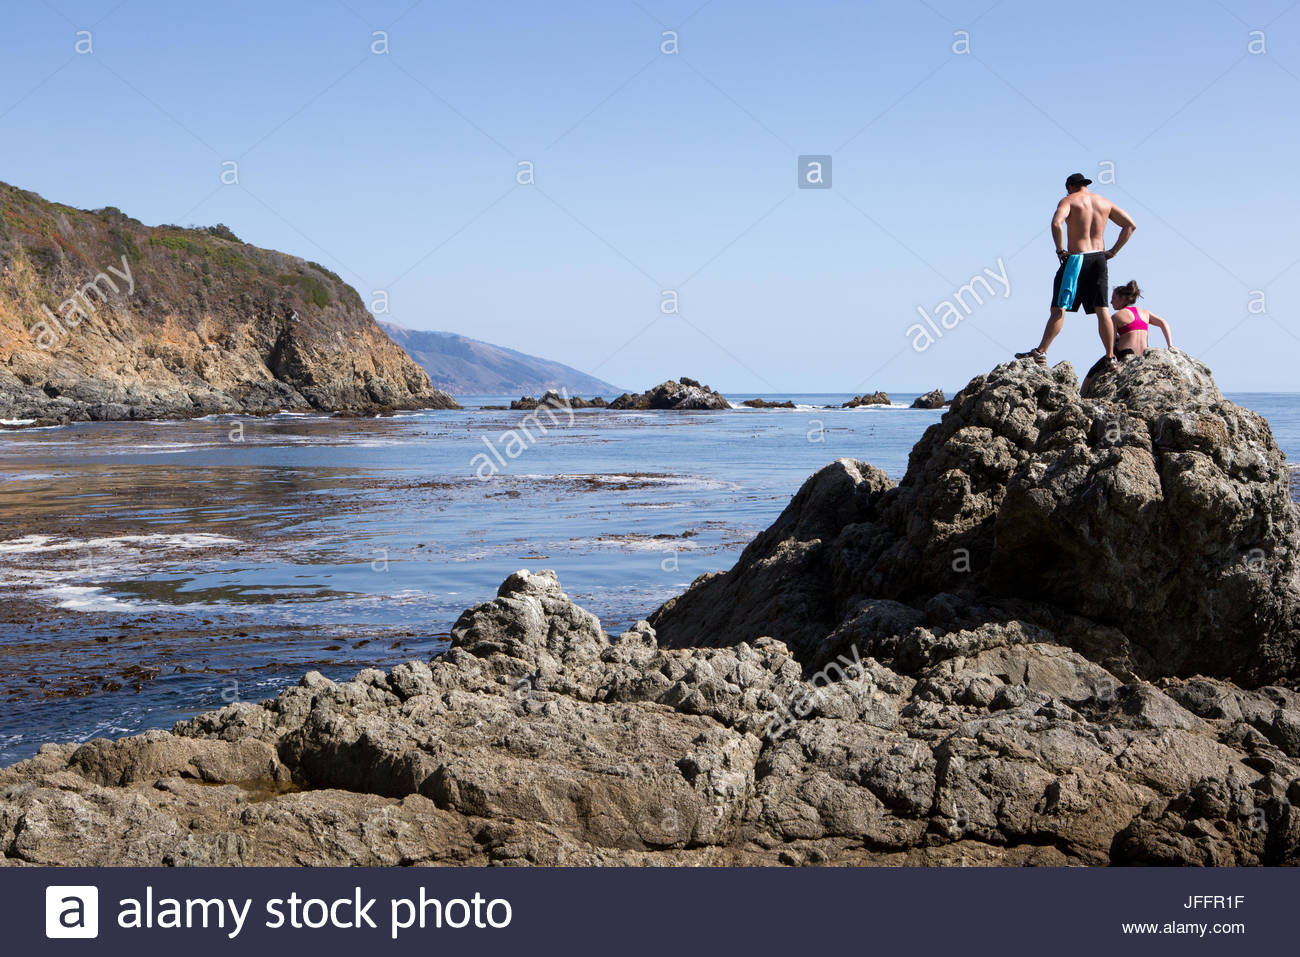 Two hikers pause on rock formations on the Big Sur coast. - Stock Image